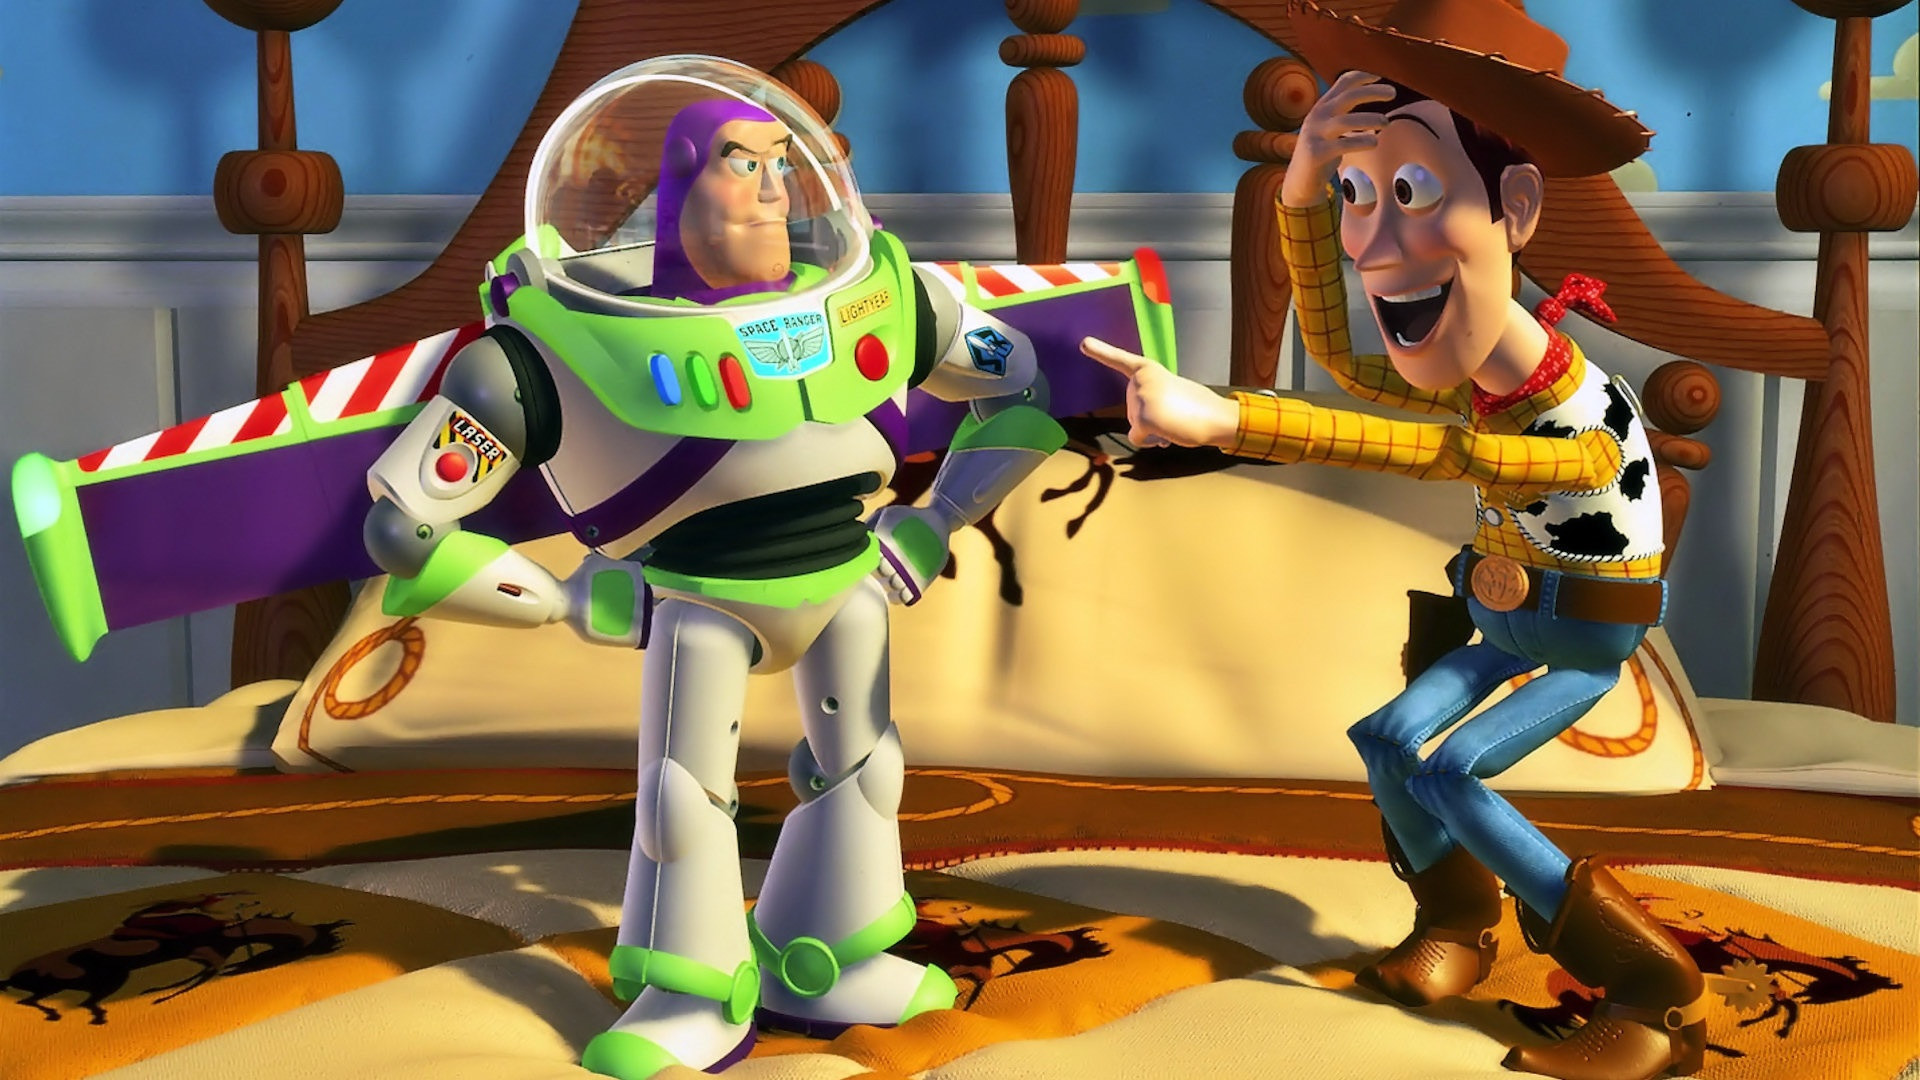 1920x1080 Completed picture of Woody and Buzz.ToyStory Photo Credit:  cartoonsonlinepics.com